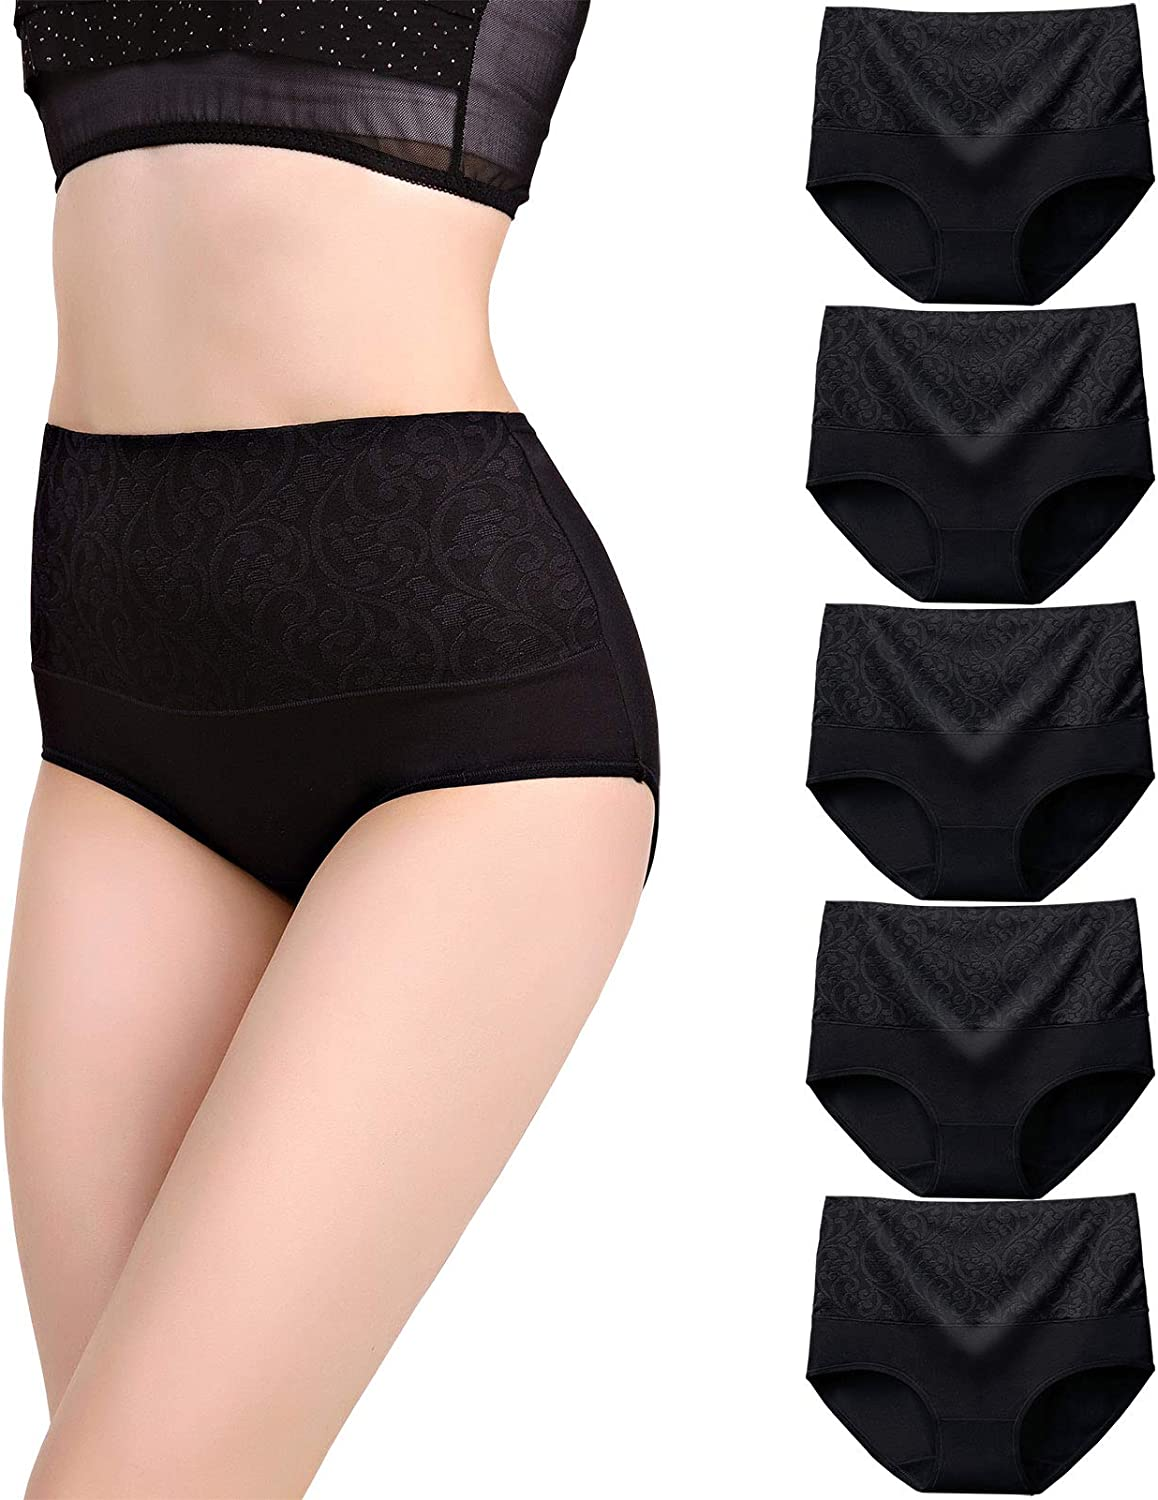 YOULEHE Women's Cotton Underwear Briefs High Waist Full Coverage Soft Breathable Panties